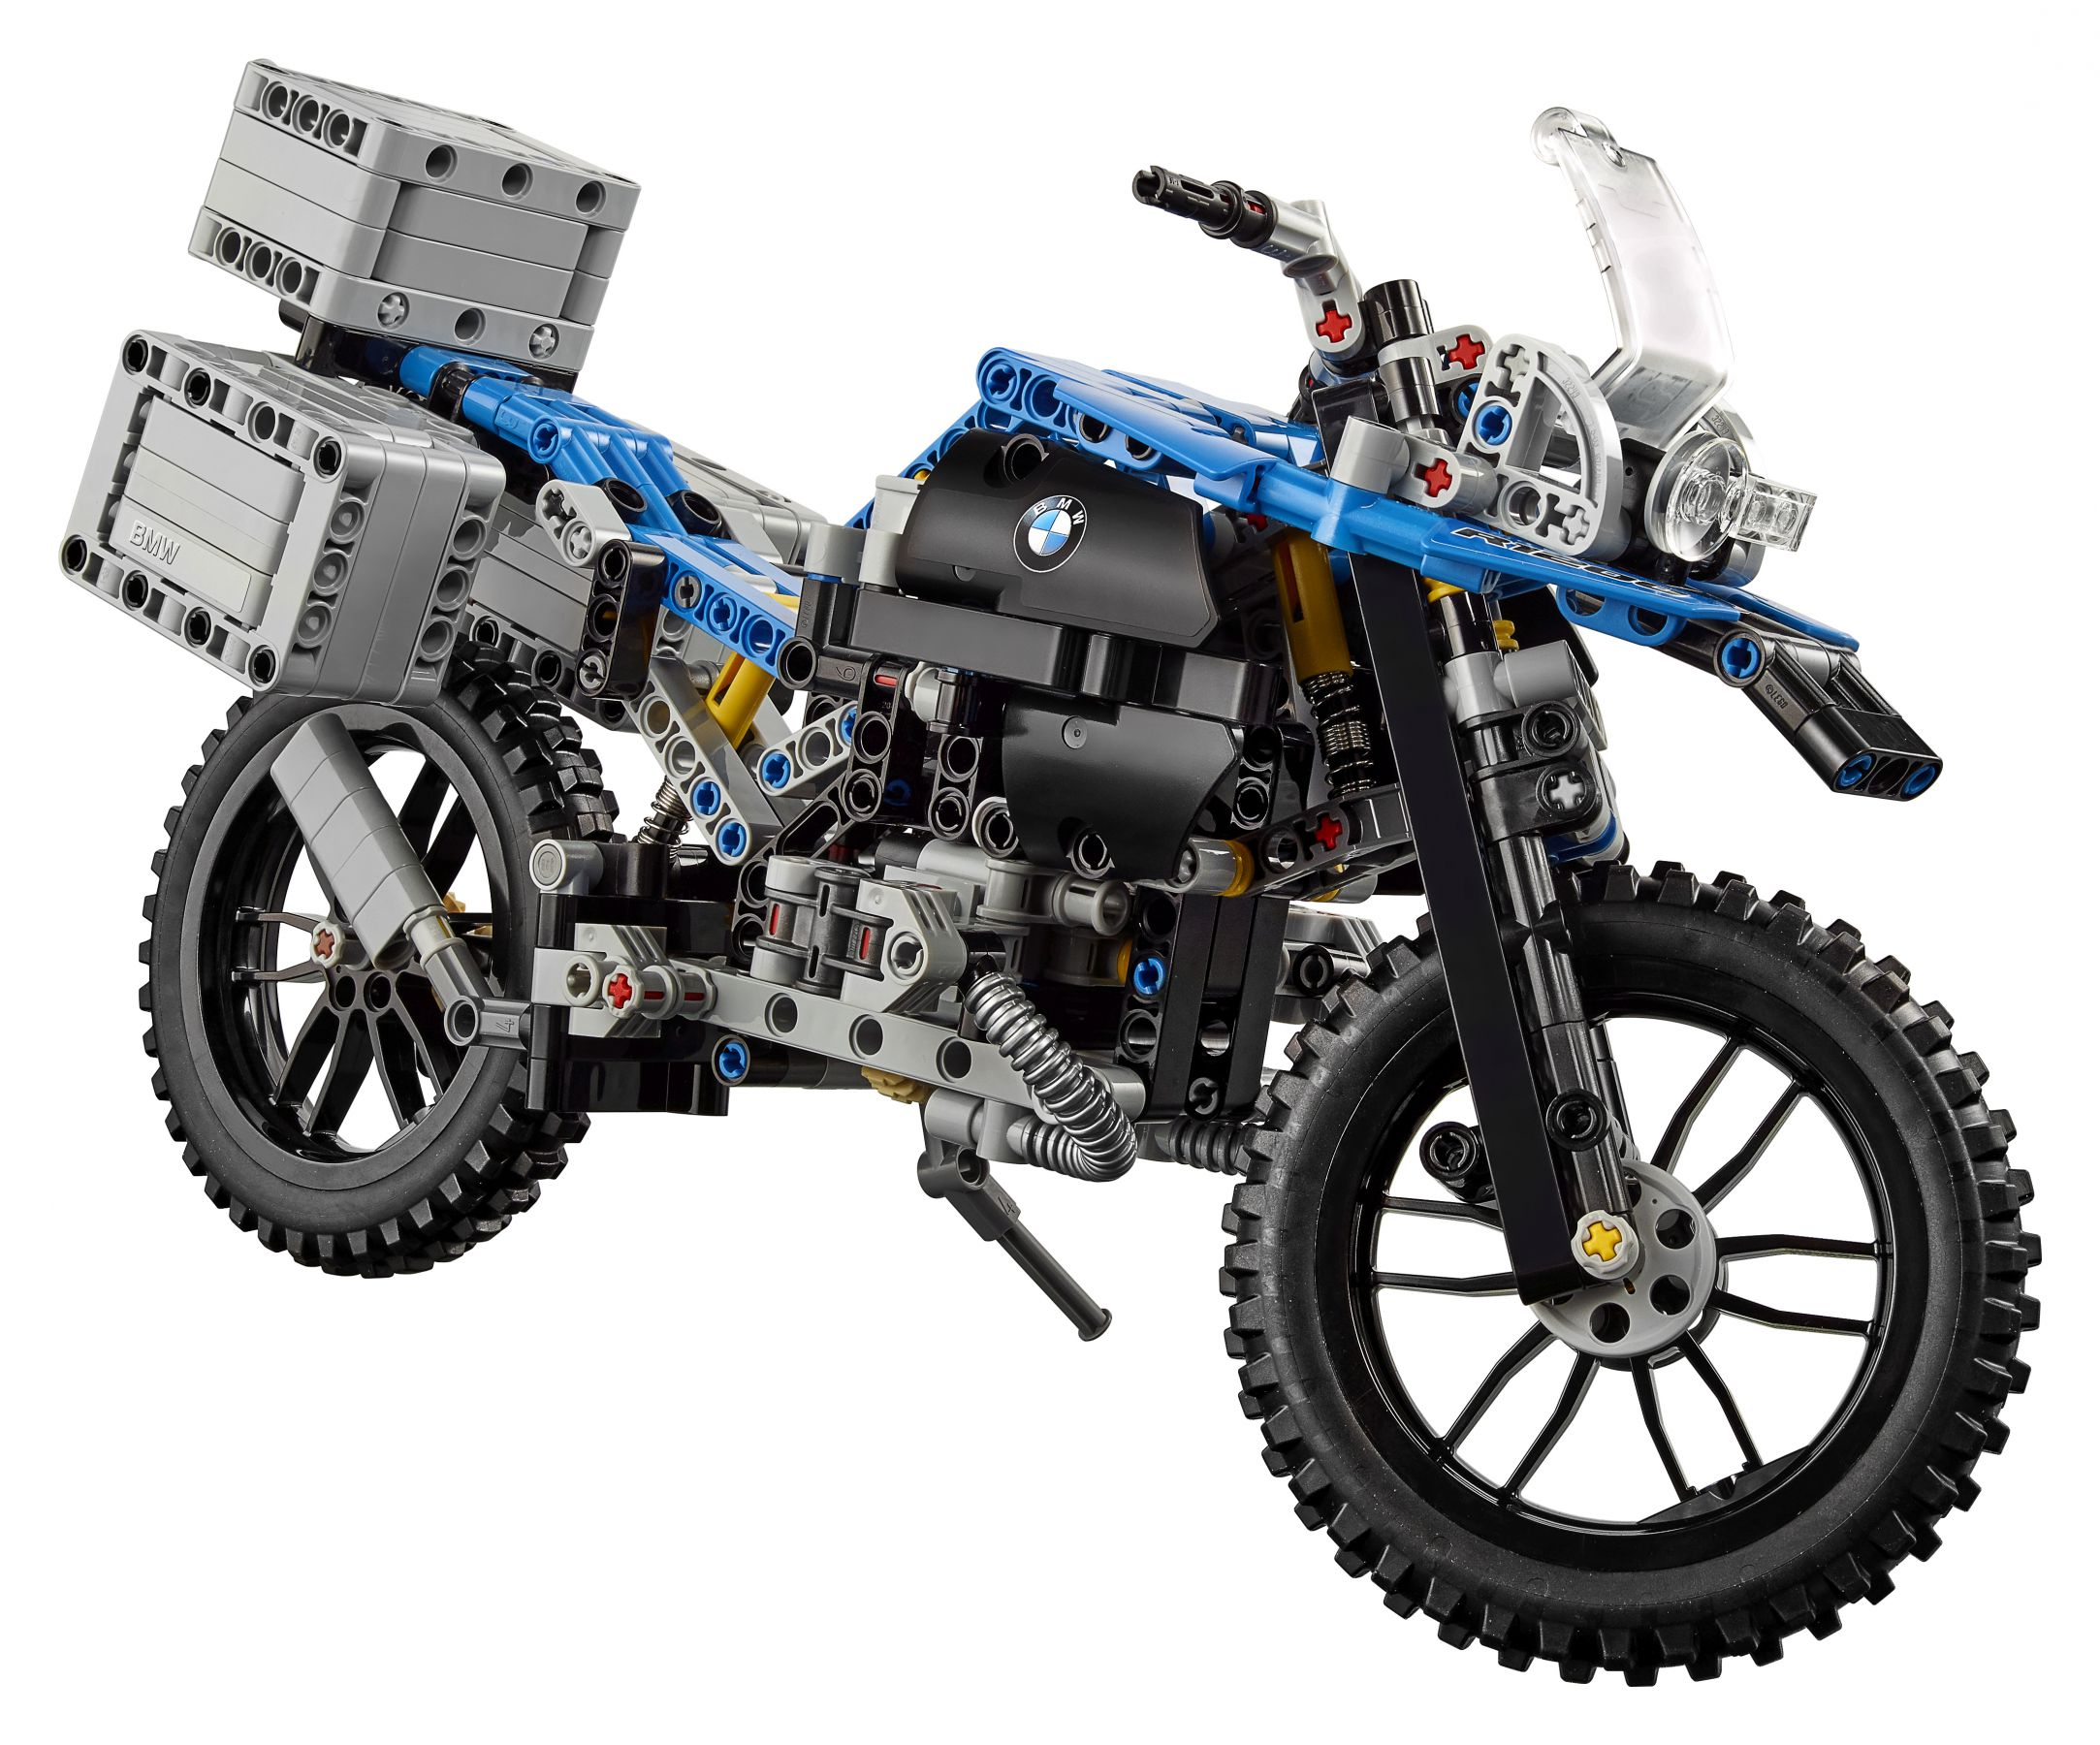 LEGO Technic 42063 BMW R 1200 GS Adventure LEGO_42063_bmw-R-1200-GS-Adventure_img5.jpg